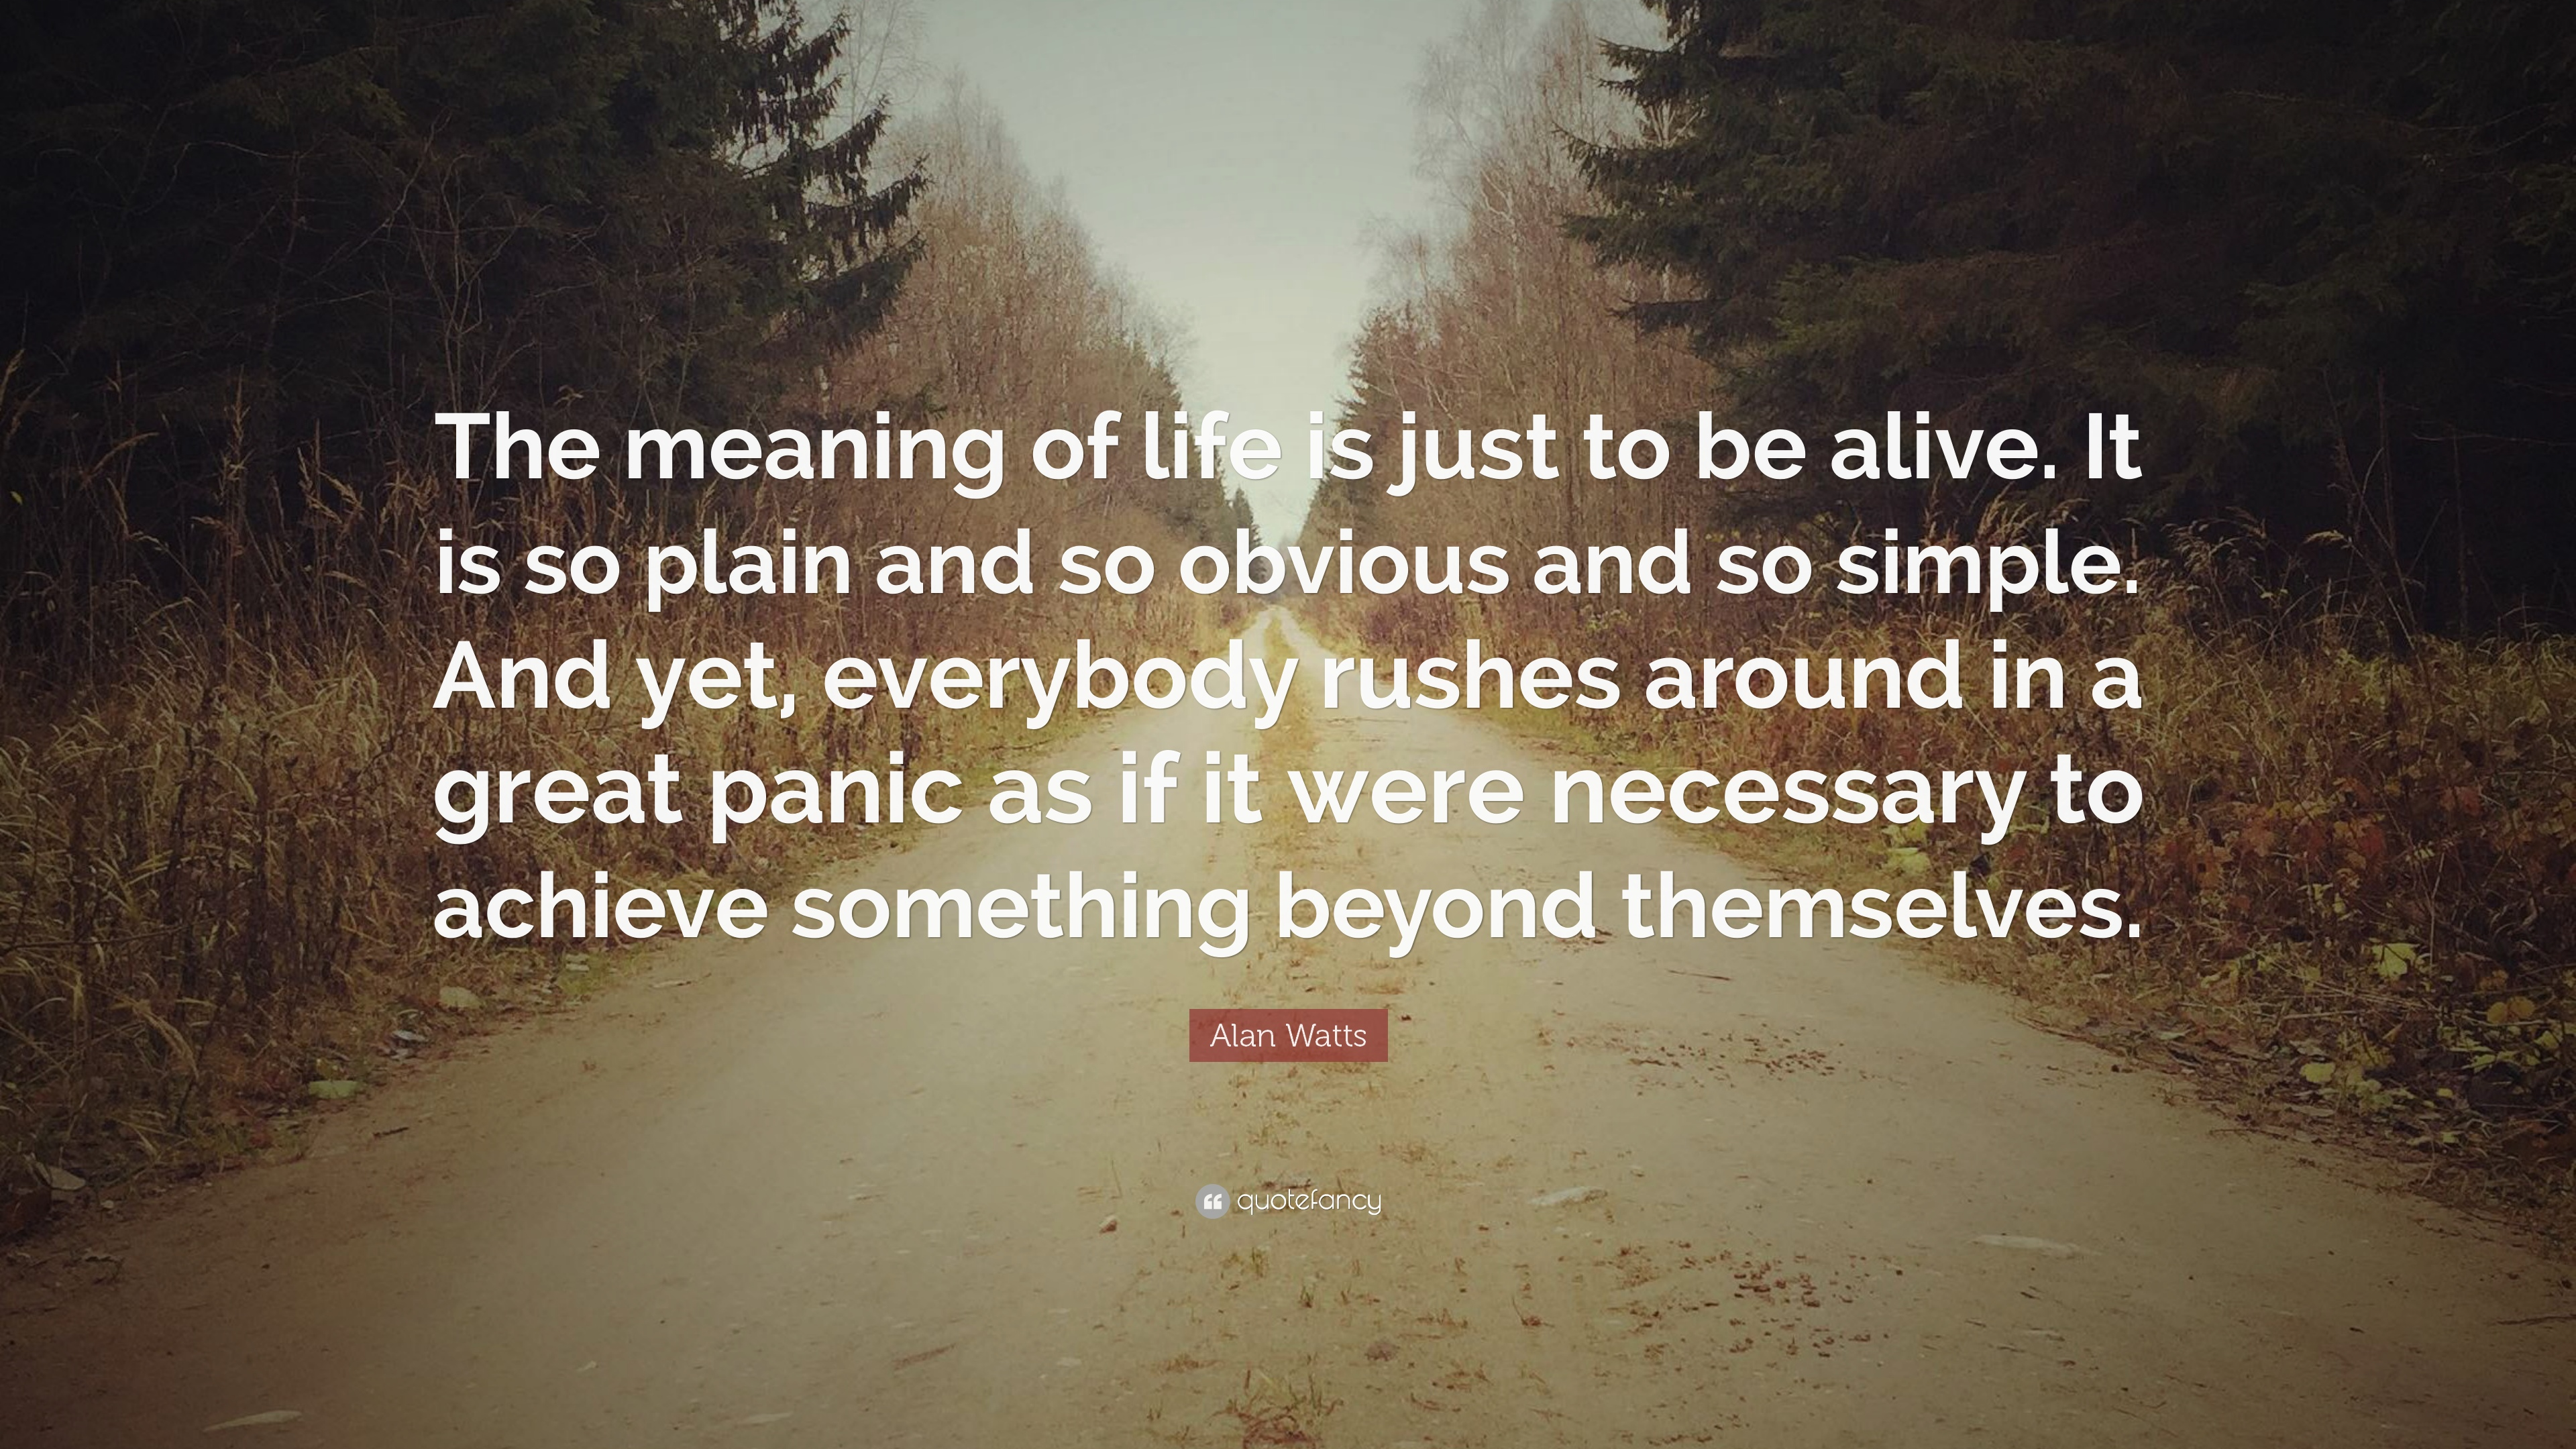 Alan Watts Quote The Meaning Of Life Is Just To Be Alive It Is So